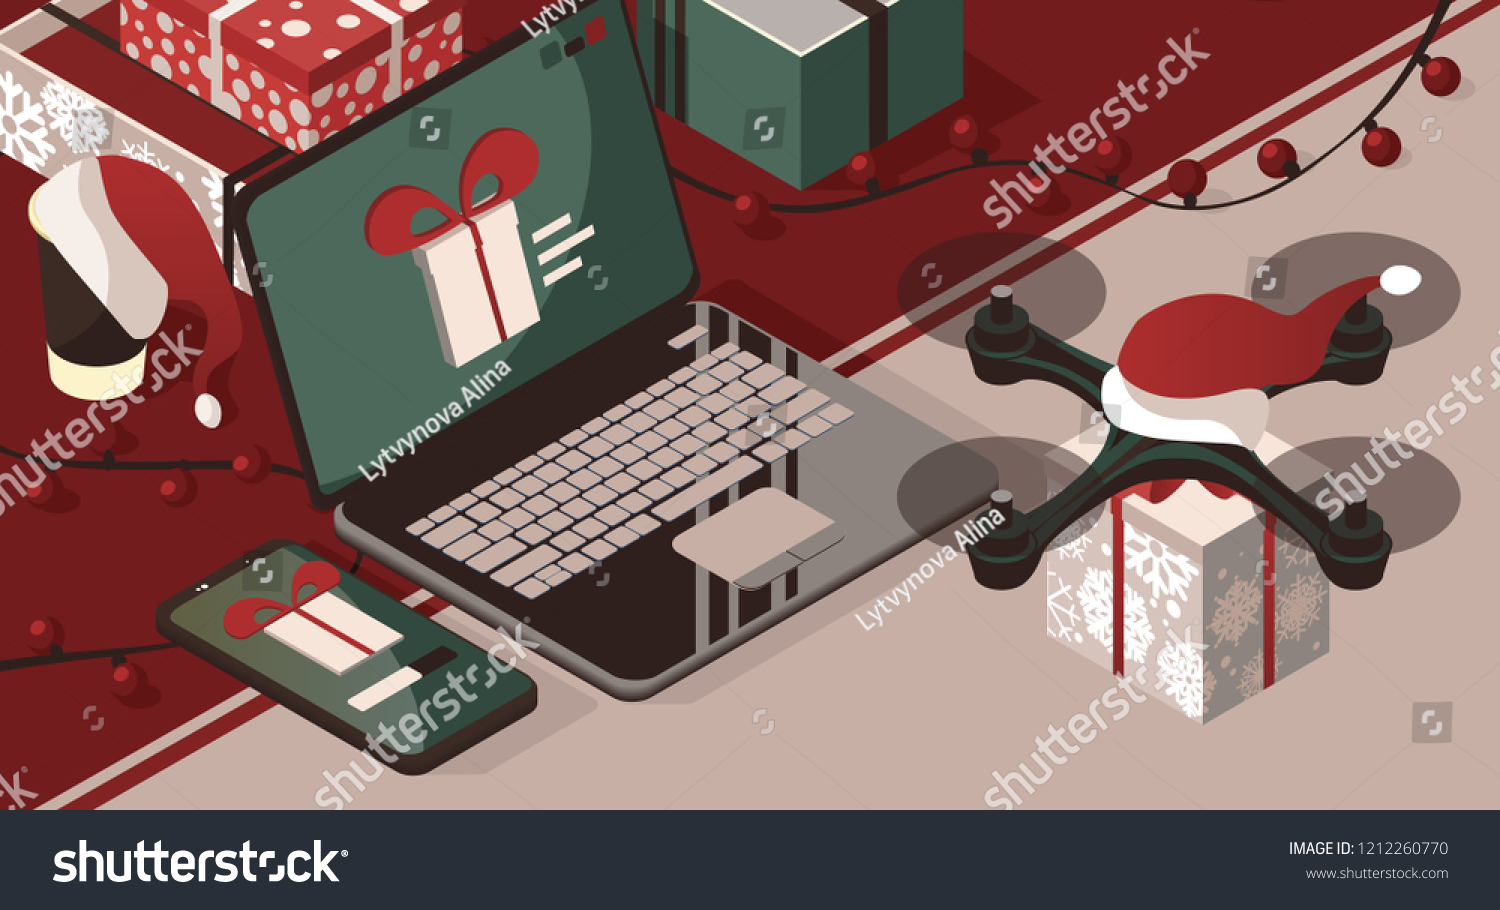 Purchase Send Christmas Gift Through App Stock Vector (Royalty Free ...